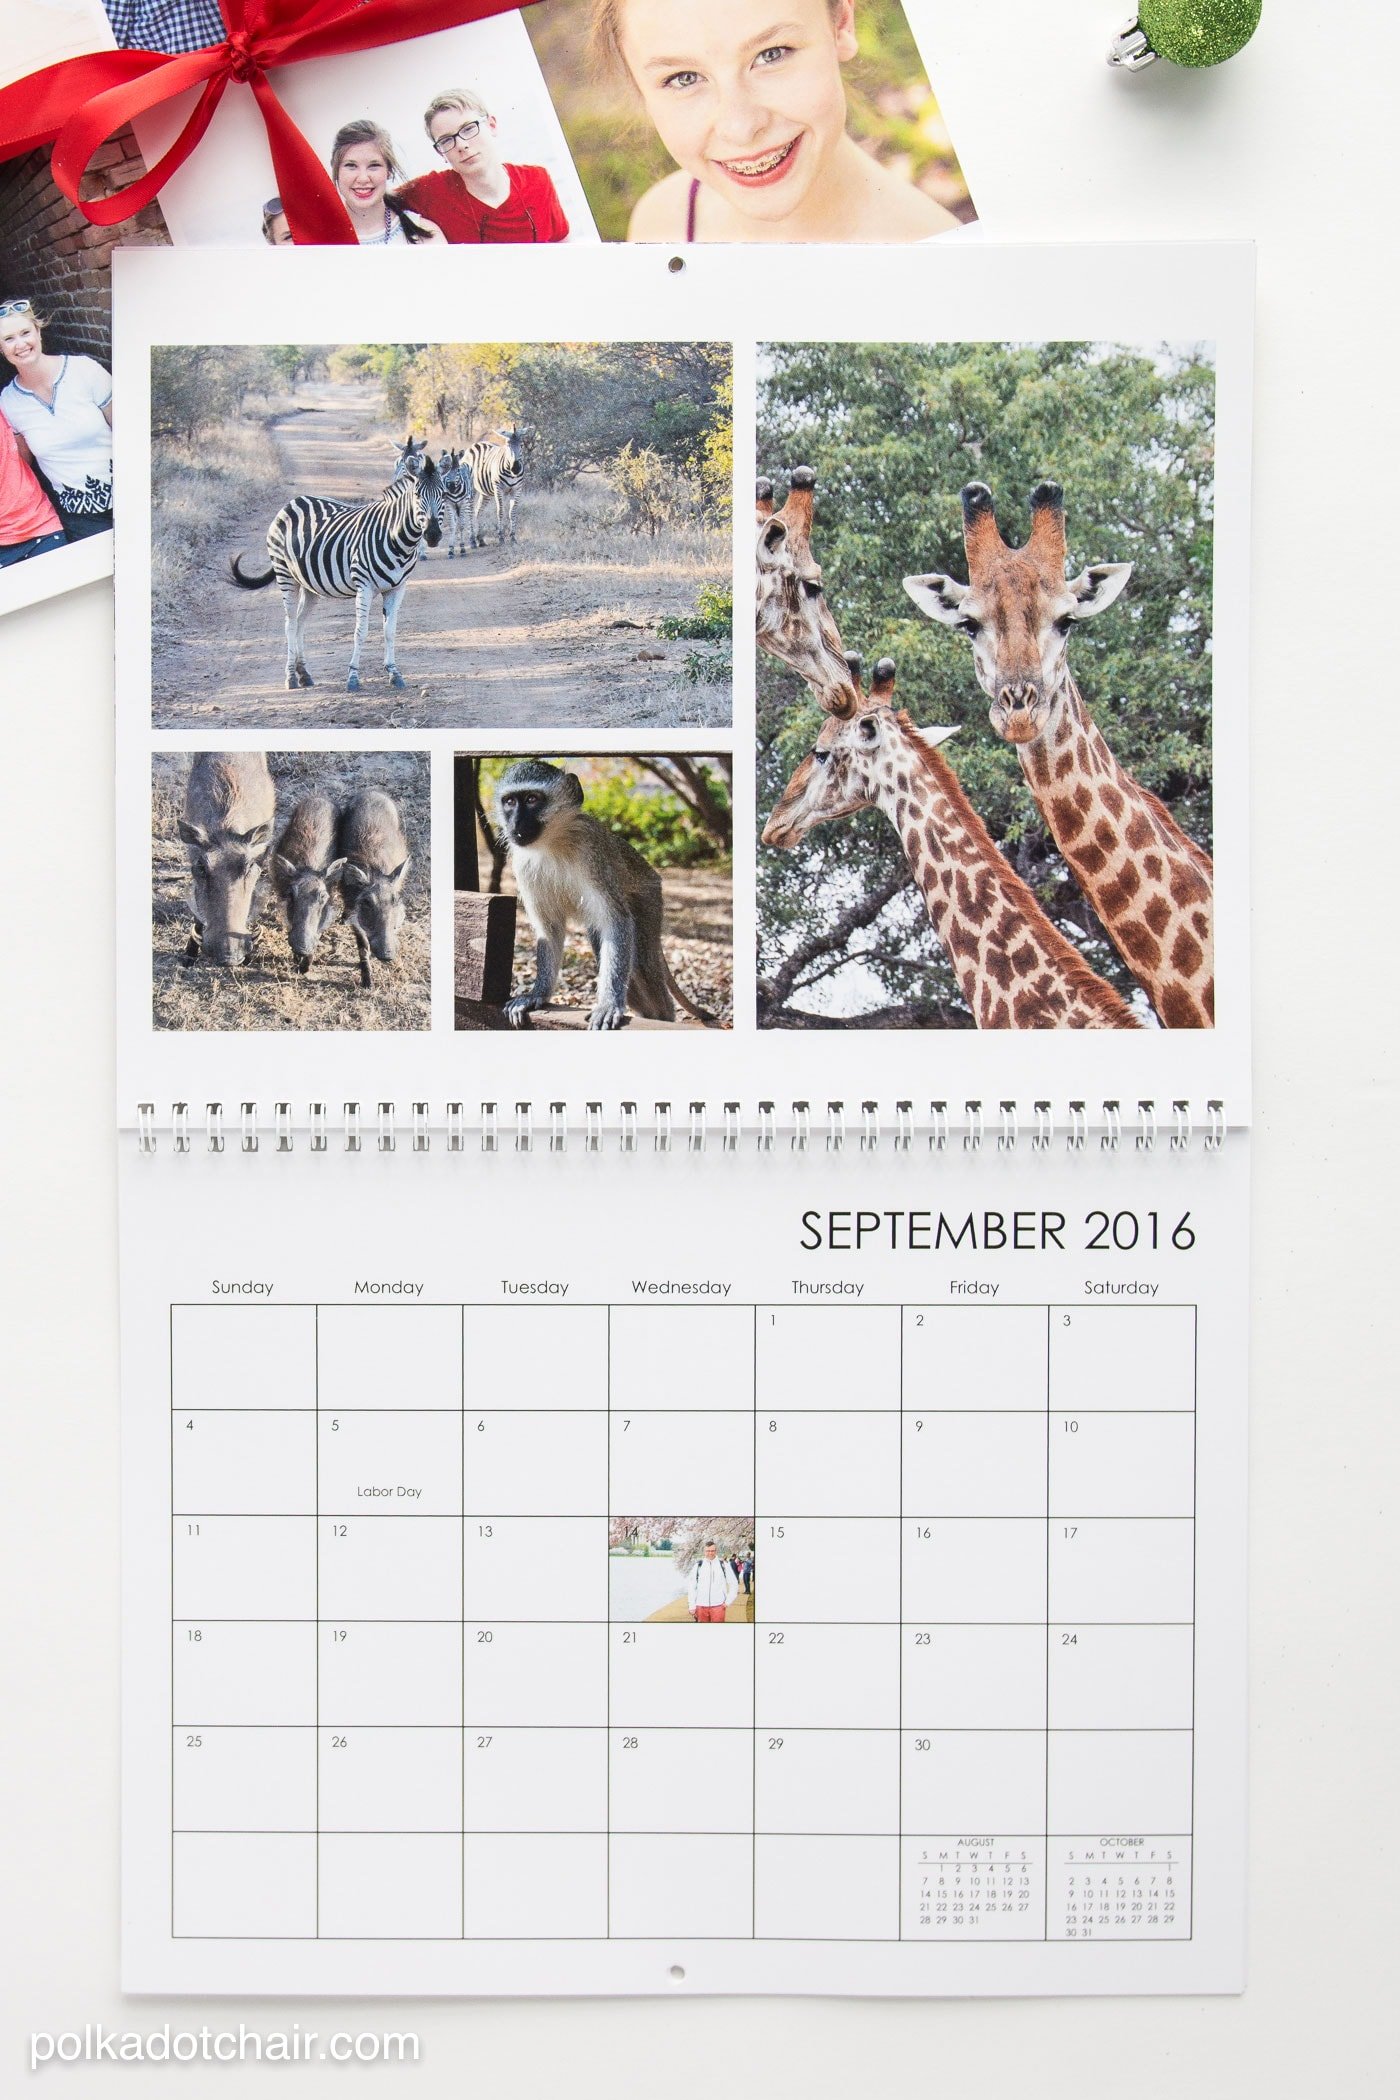 """Create a """"Favorite Places"""" calendar as a gift for far away family and friends. This would also be a nice grandparent gift"""